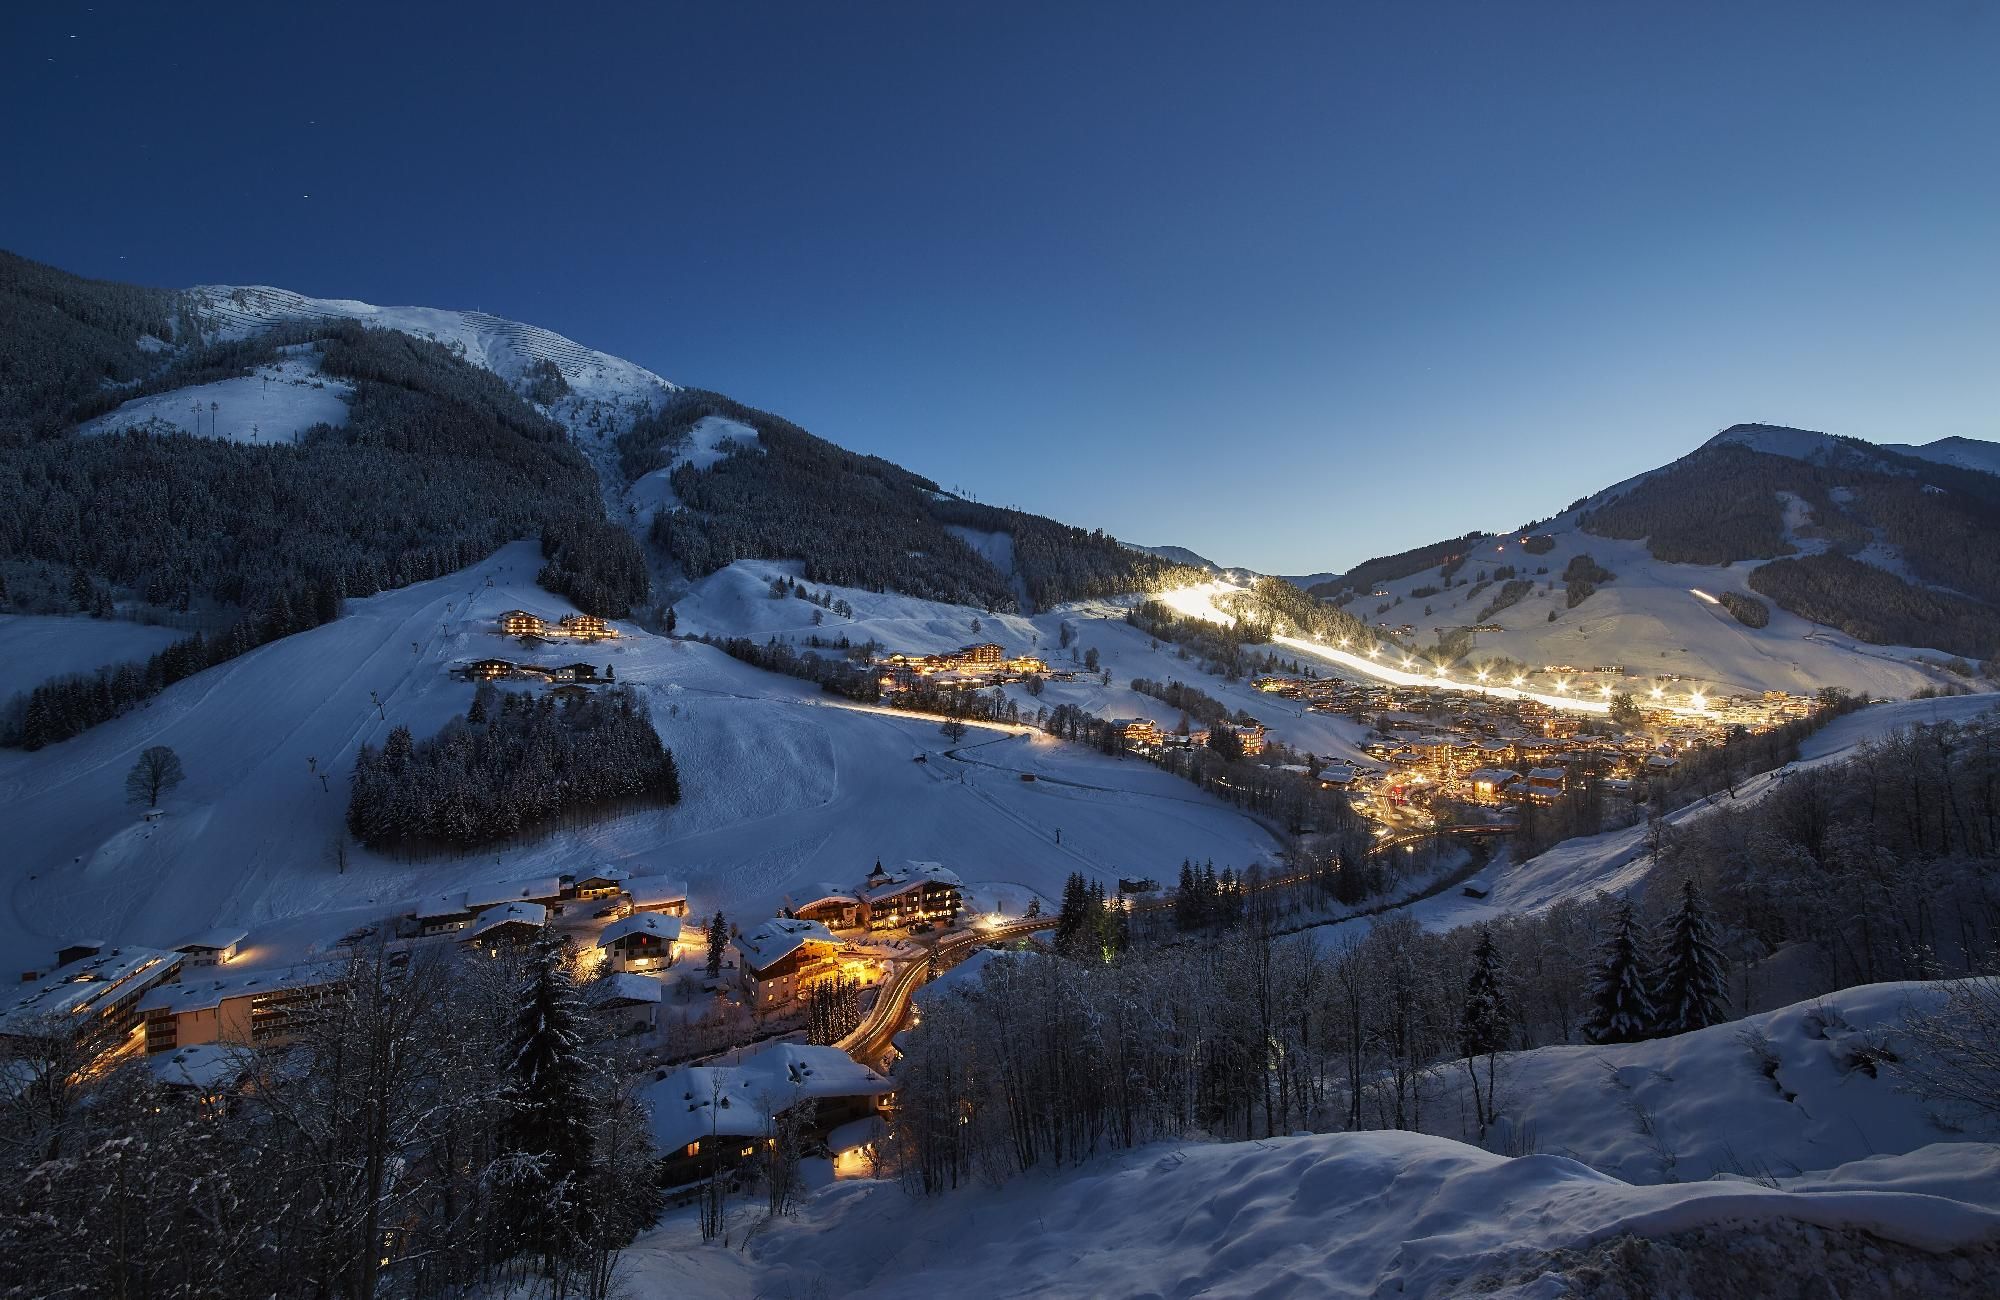 Ski Pension in Austria SOLD - Austria - Salzburgland